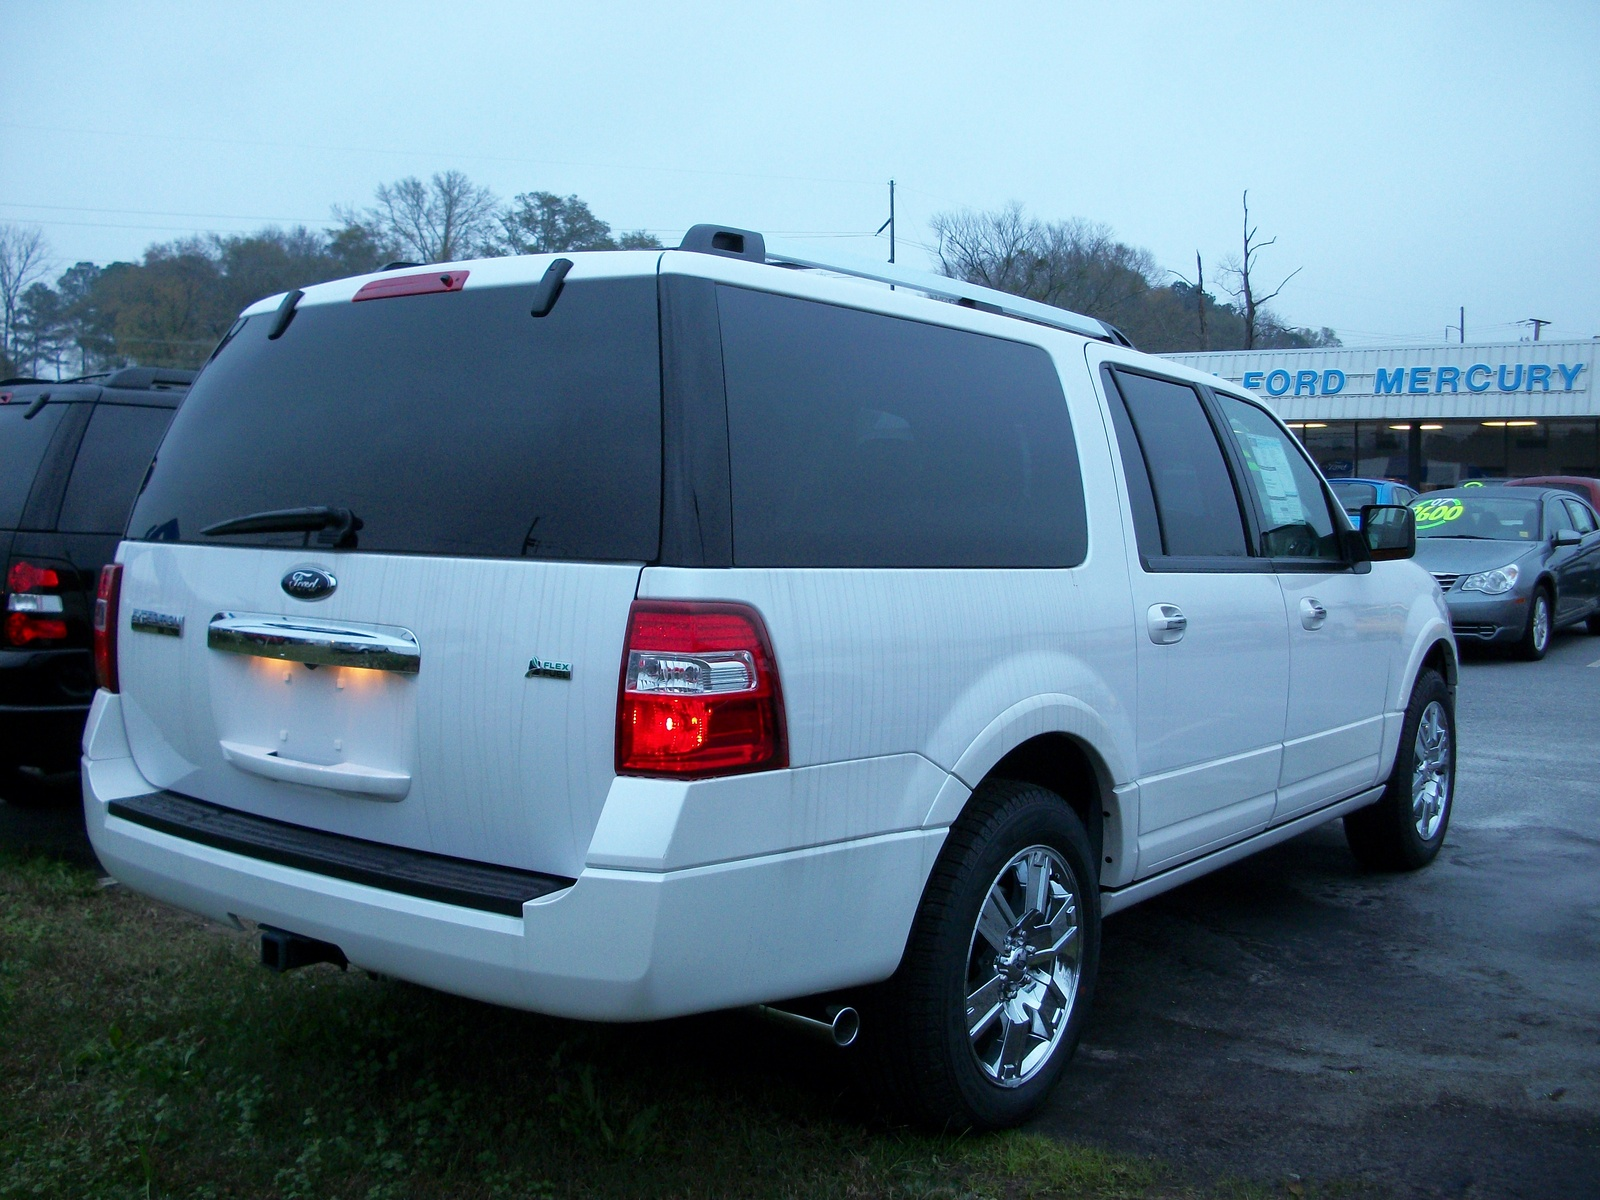 Ford Expedition El #10